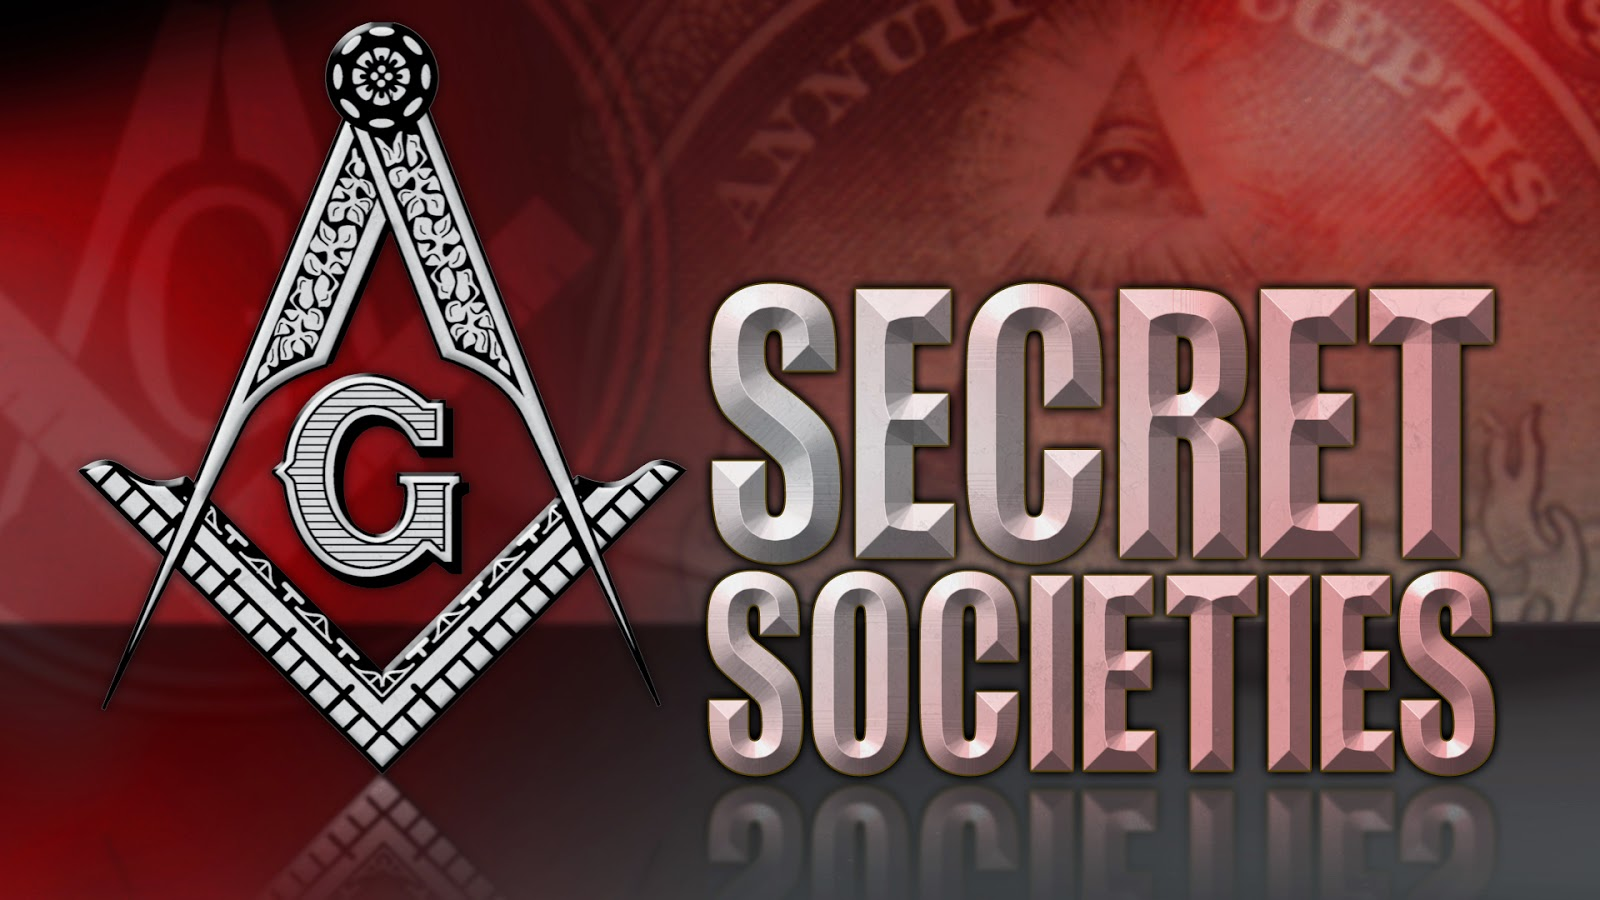 01 Secret Societies Network